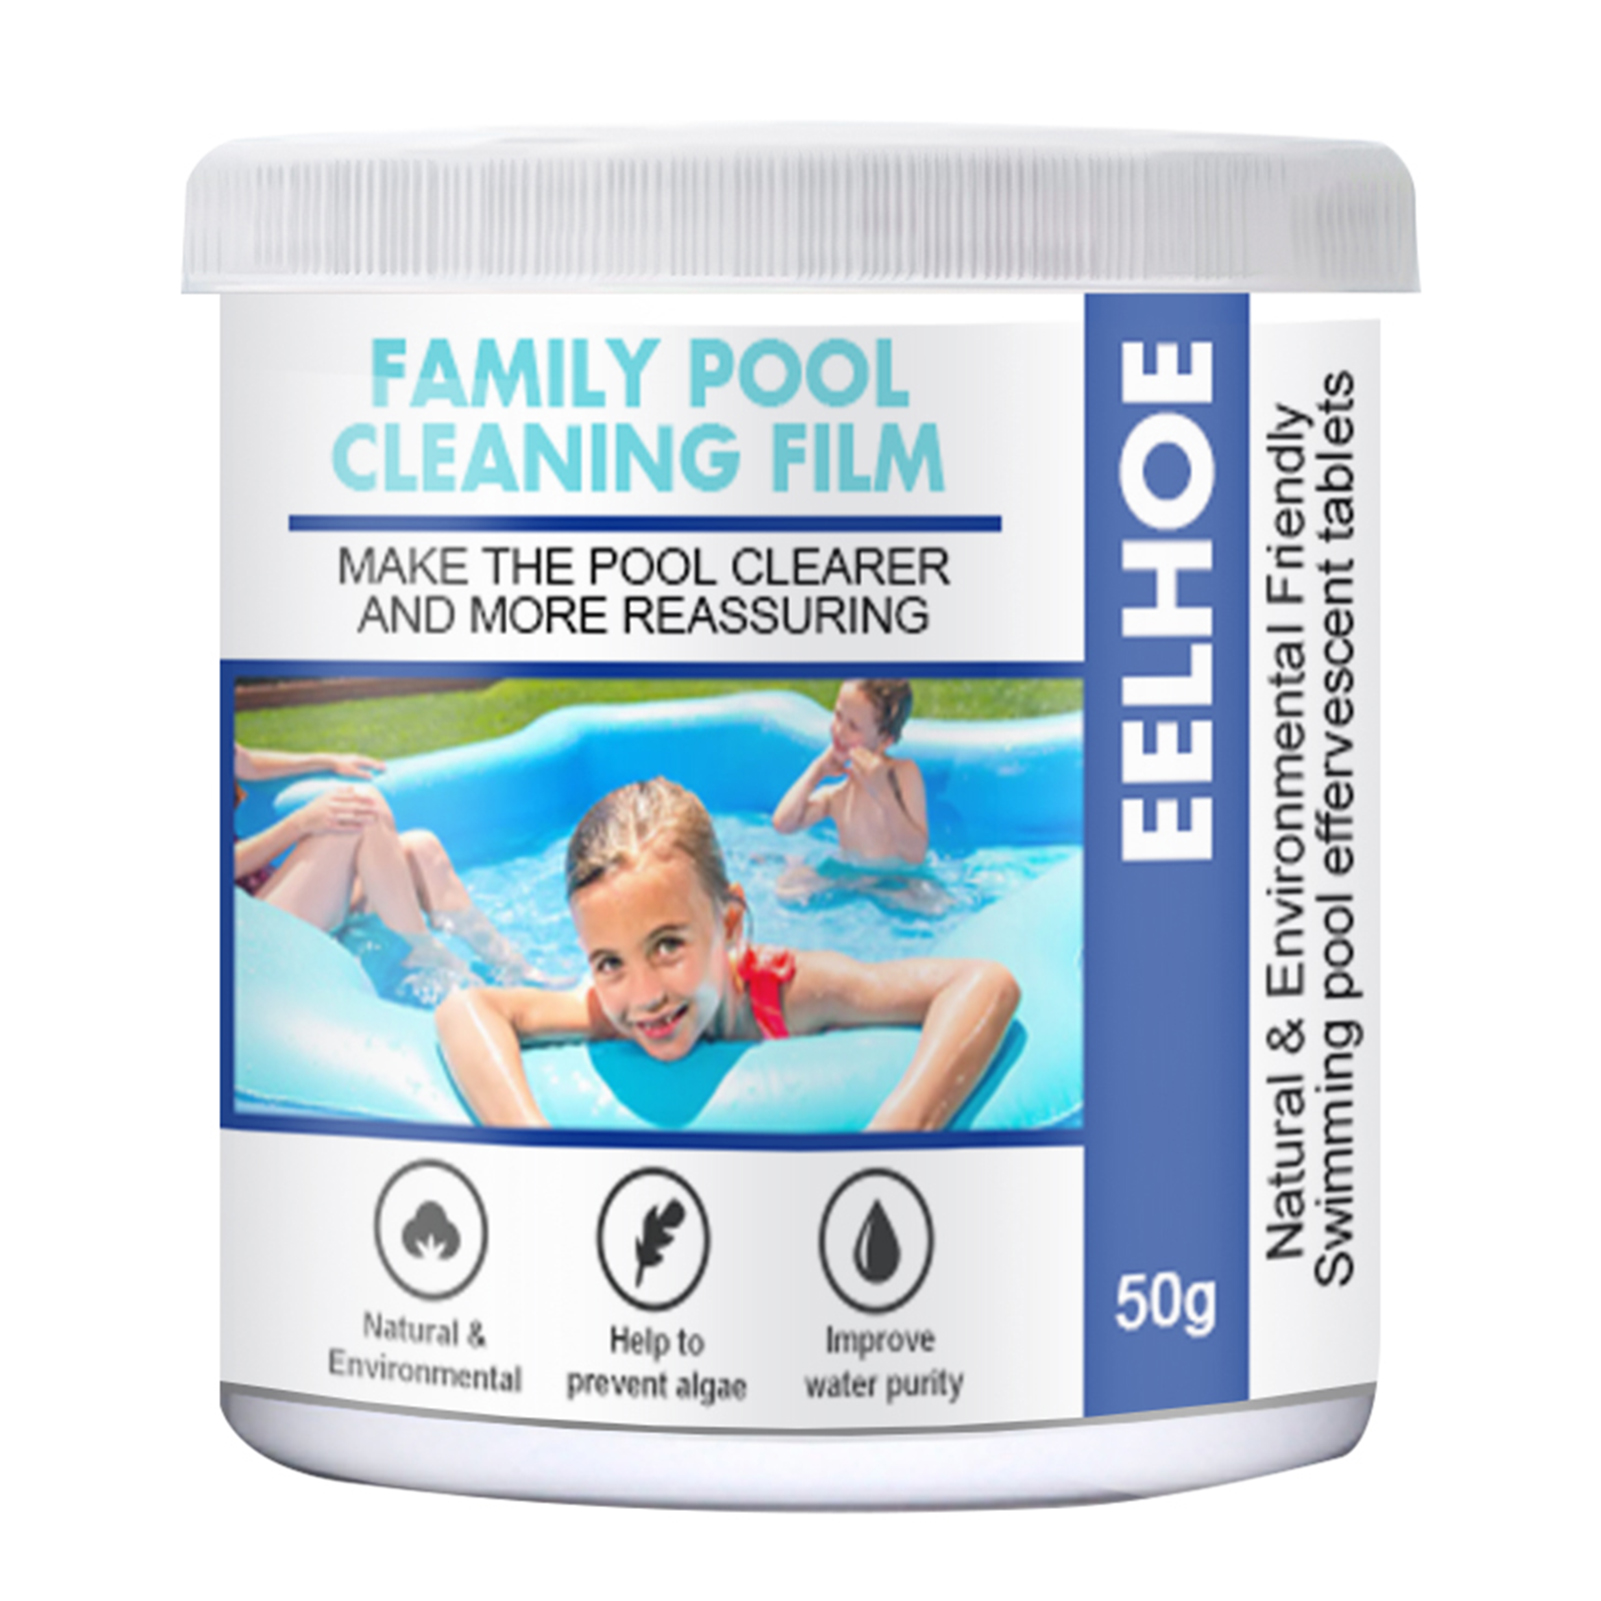 Family Pool Cleaning Film Effectively Purify Water Clear Pool Foaming Cleaners Swimming Pool Detergent Home Cleaner